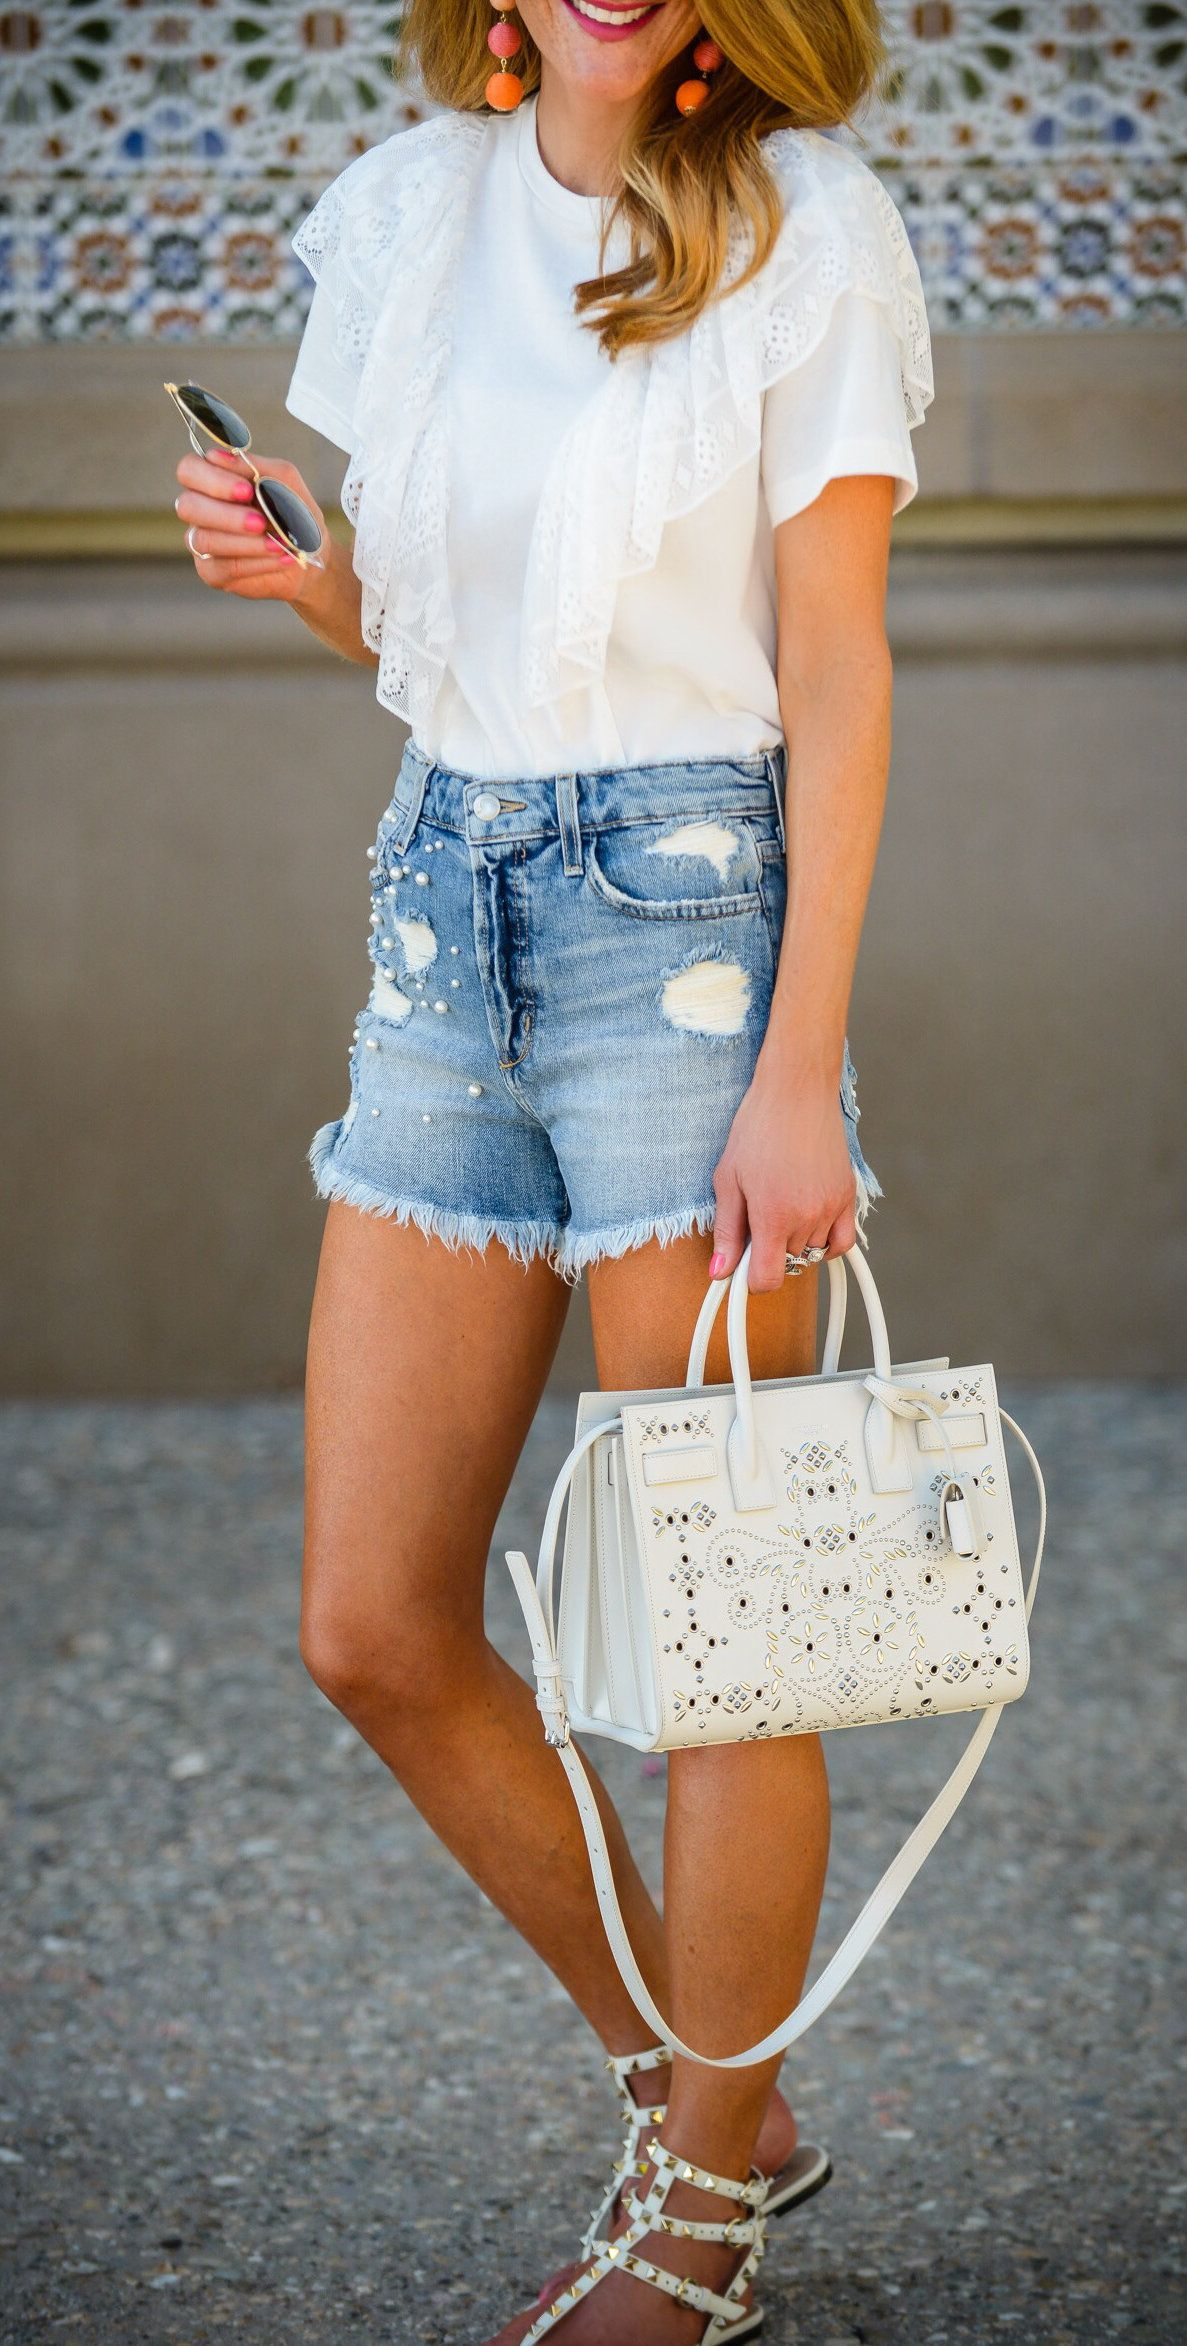 be48c0b529b summer outfits Elevating My Tee   Jean Shorts Game With This Lace Adorned  Top   Pearl Embellished Cutoffs! How Totally Fun Are These Two Pieces  I  Love When ...